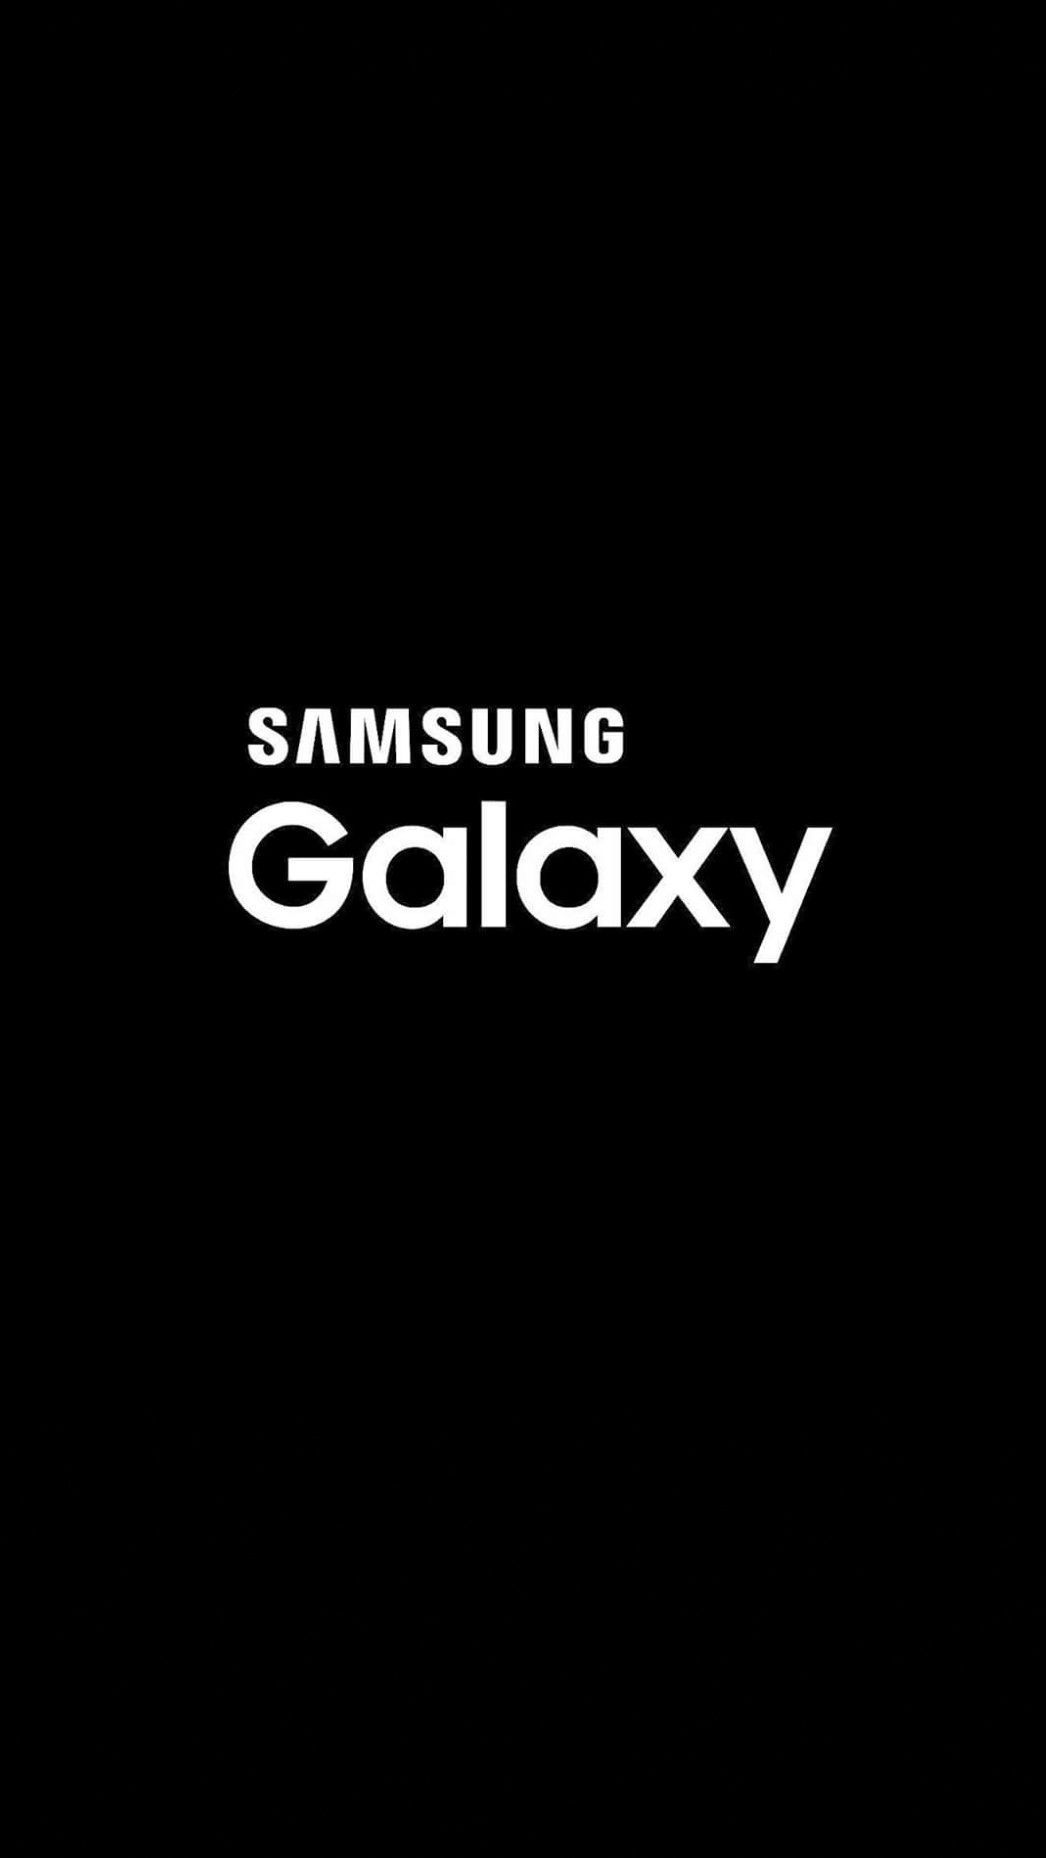 Samsung Galaxy Wallpaper Background In 2020 Samsung Galaxy Wallpaper Samsung Wallpaper Samsung Wallpaper Android